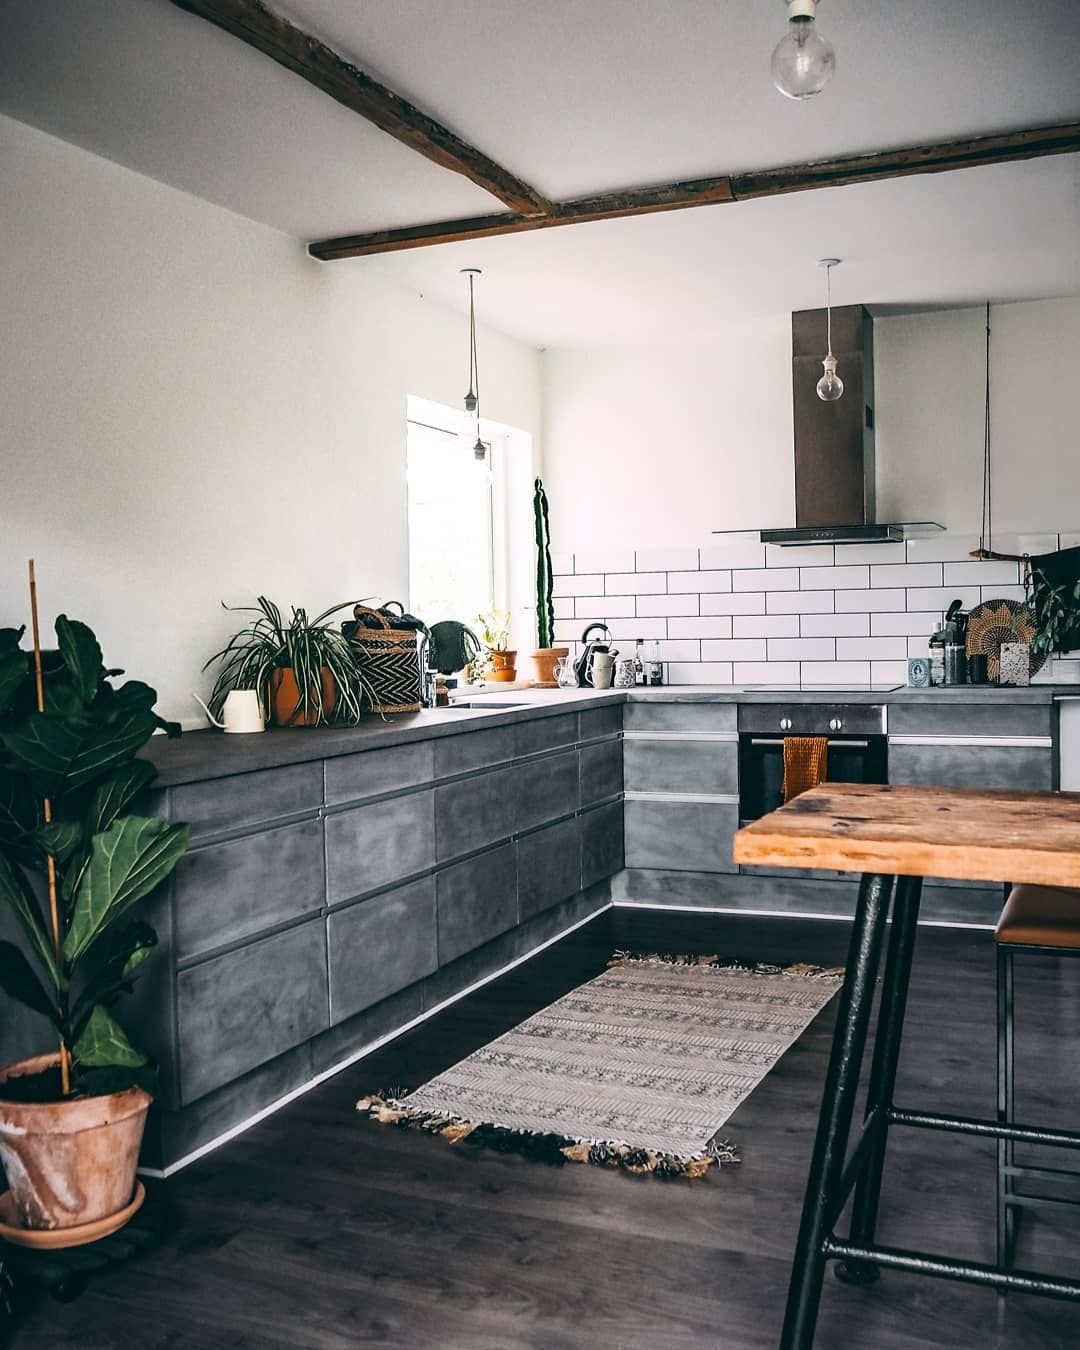 Im Sitting In The Kitchen With A Cup Of Coffee First Cup Of The Day And It Hit Me How The Heck Scandinavian Kitchen Design Trendy Kitchen Tile Kitchen Design